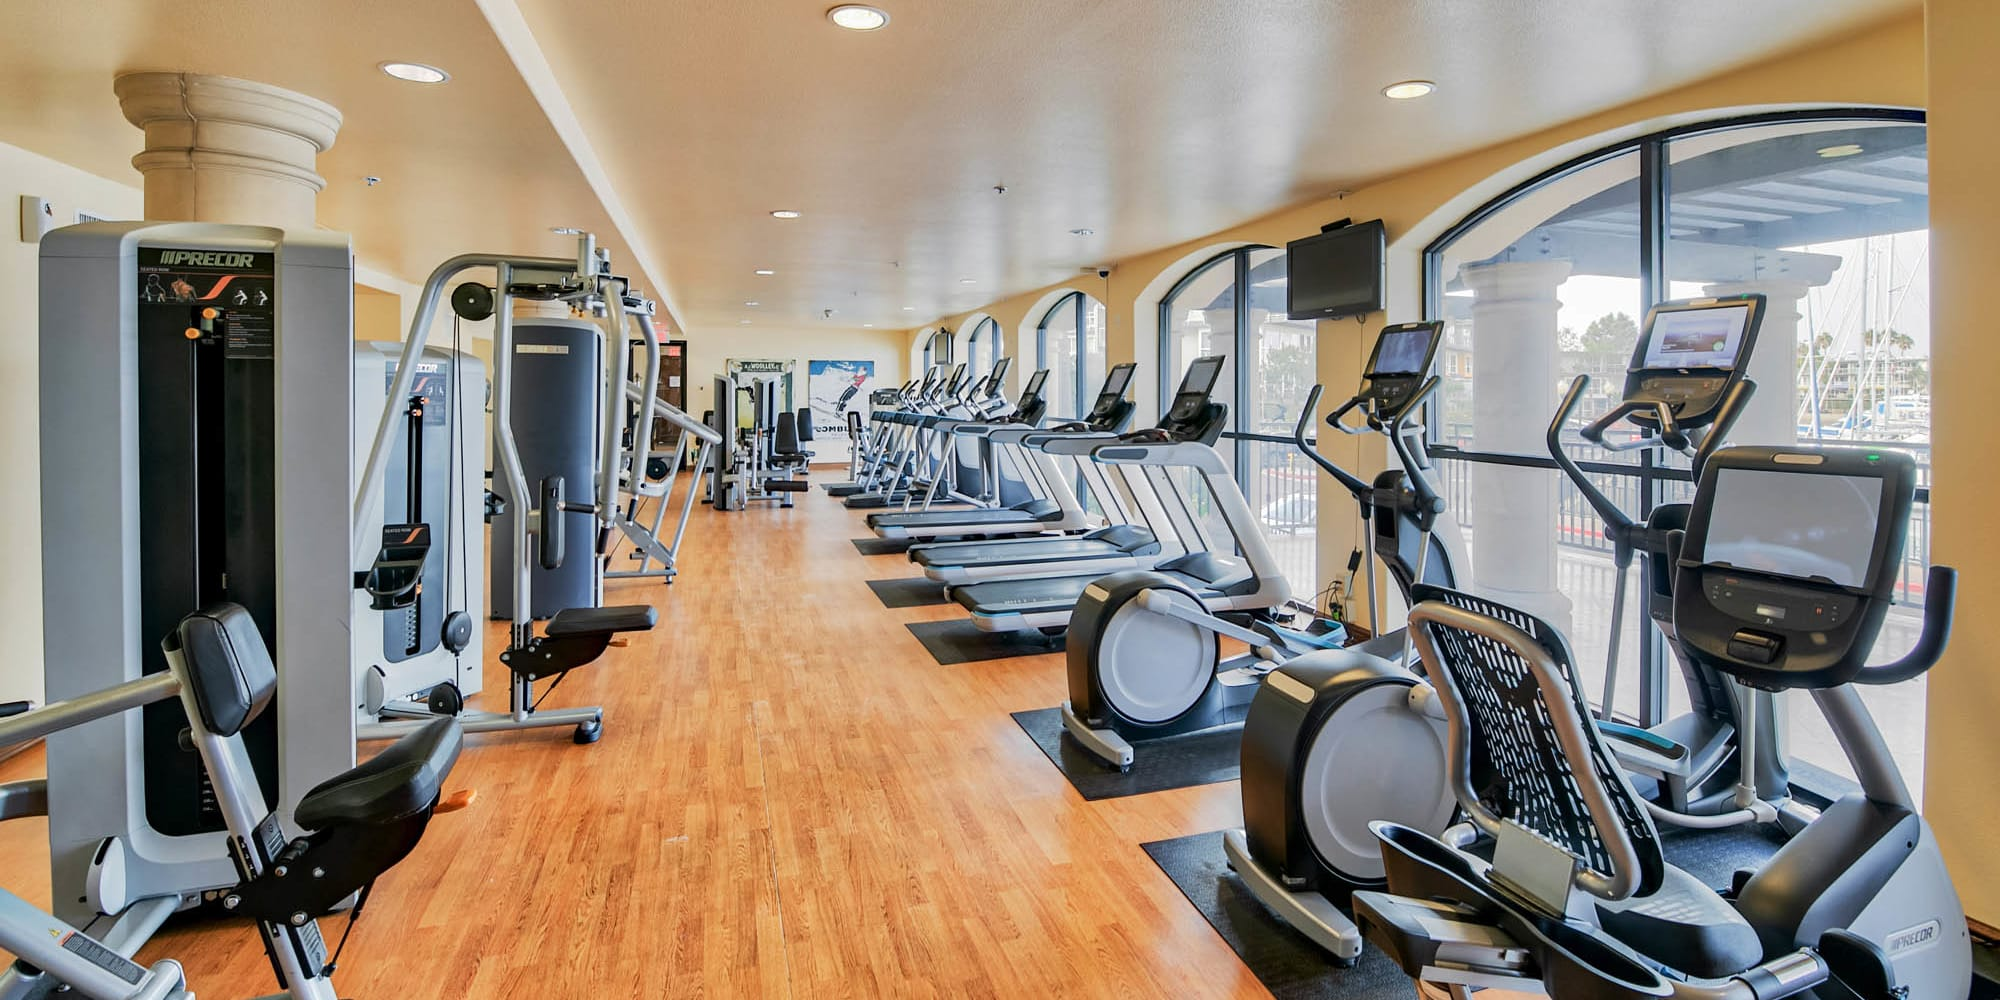 Expansive fitness center with plenty of exercise equipment for all at The Tides at Marina Harbor in Marina Del Rey, California